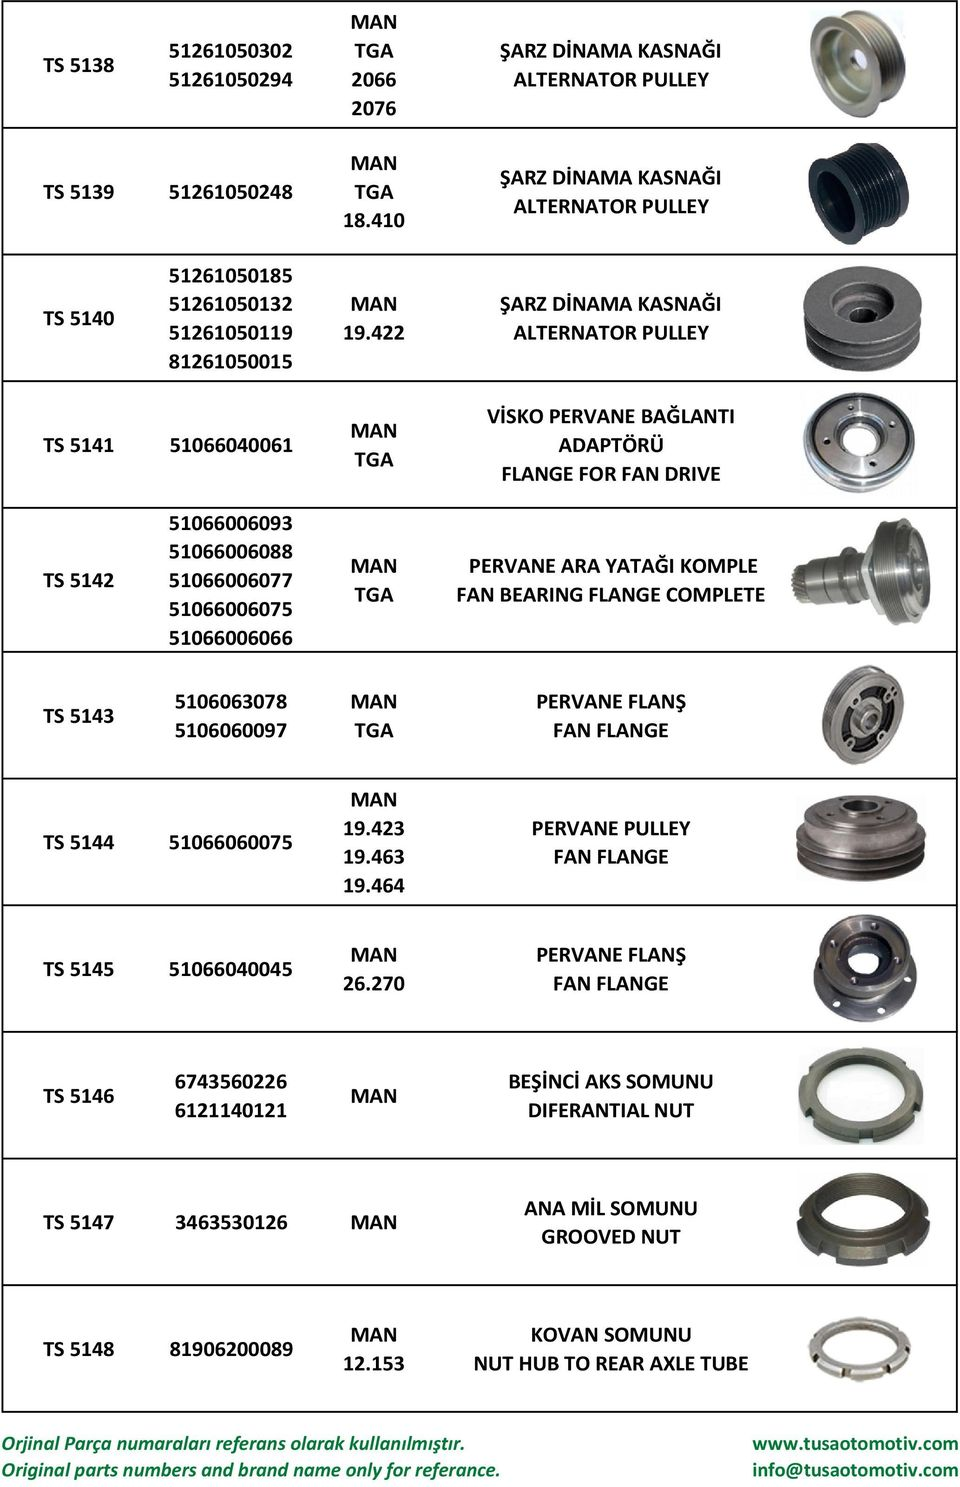 KOMPLE FAN BEARING FLANGE COMPLETE TS 5143 5106063078 5106060097 PERVANE FLANŞ FAN FLANGE TS 5144 51066060075 19.423 19.463 19.464 PERVANE PULLEY FAN FLANGE TS 5145 51066040045 26.